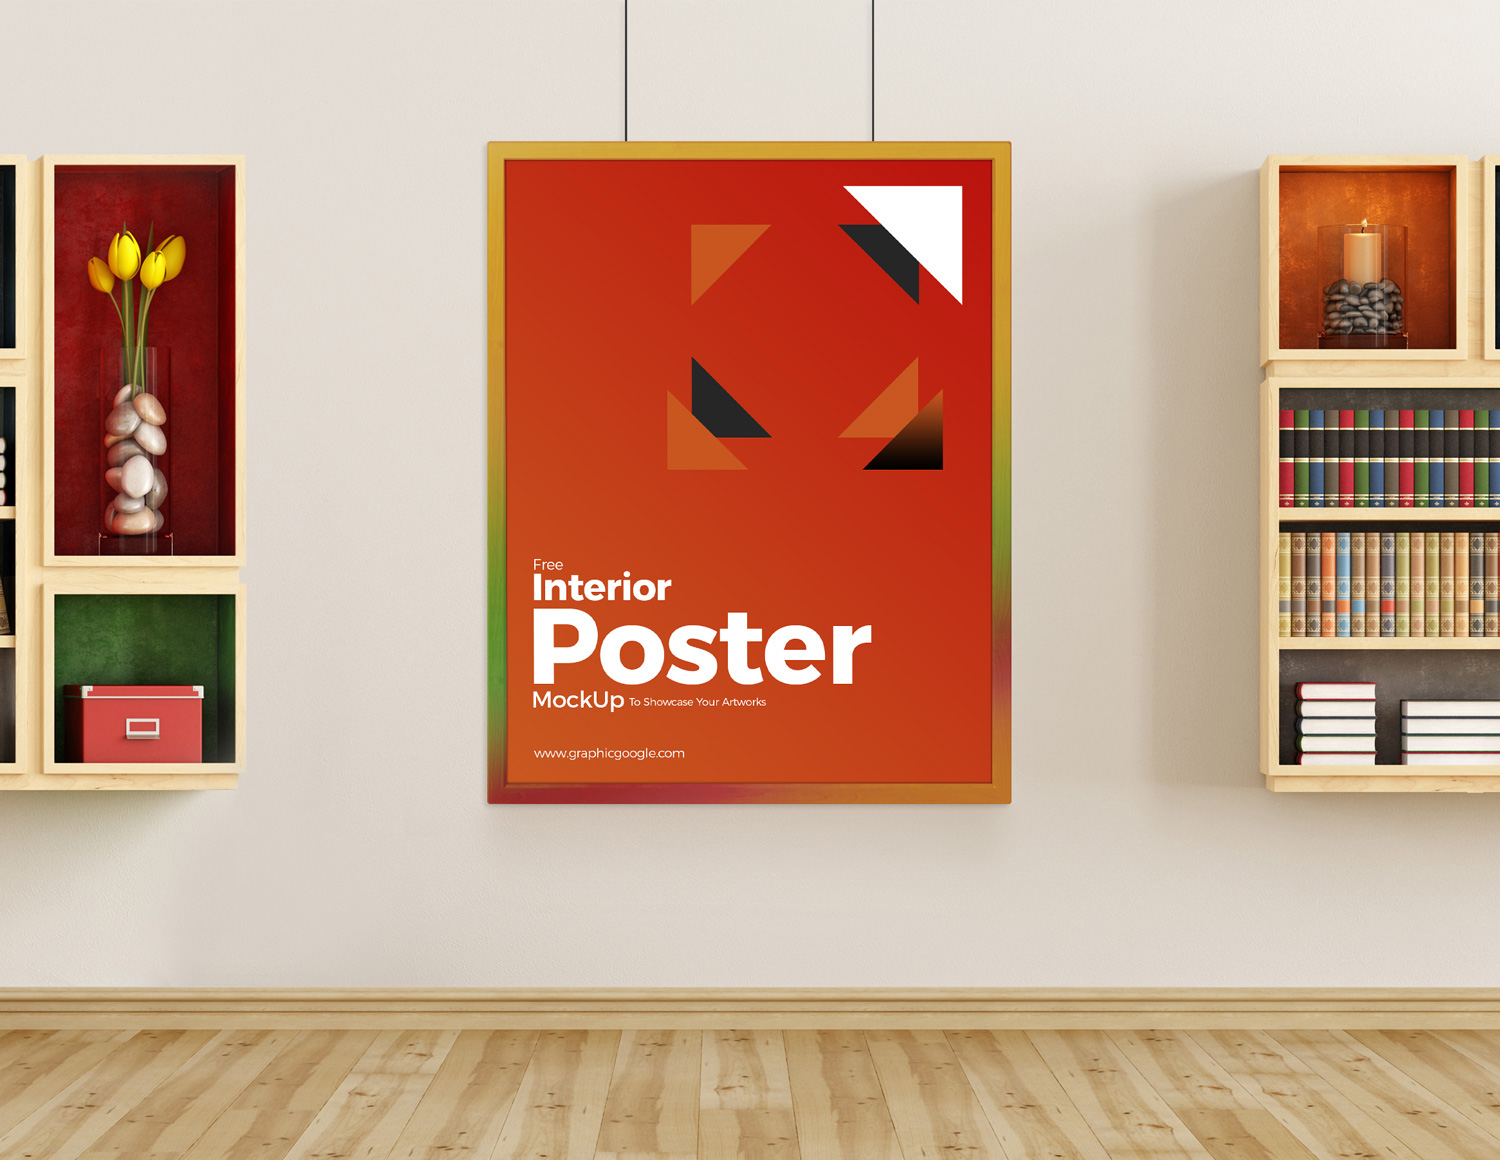 Free-Indoor-Poster-Mockup-For-Your-Artwork